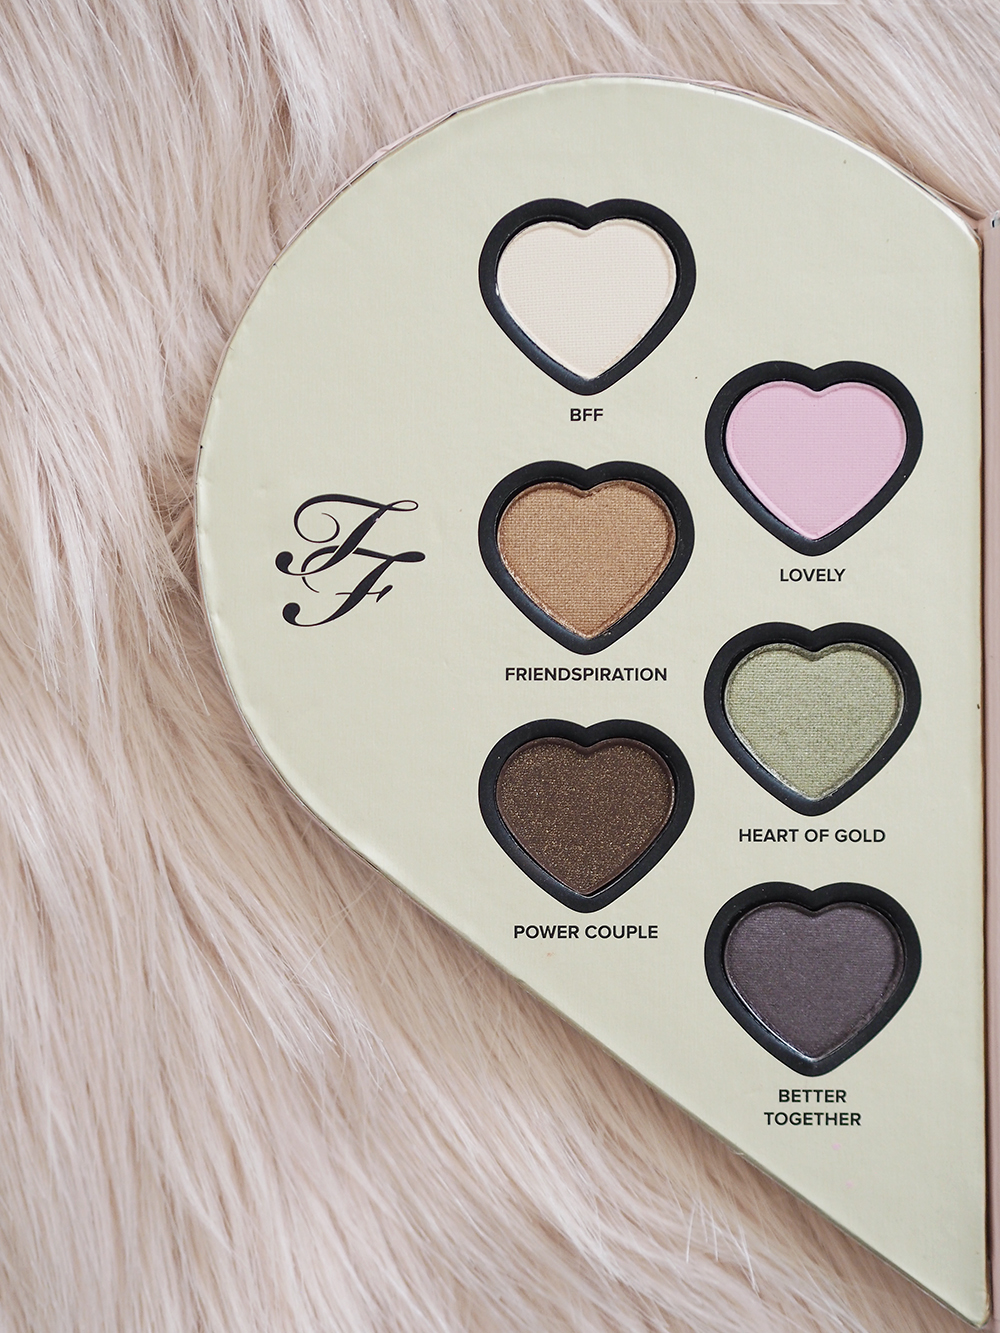 Too Faced Kat Von D palette review